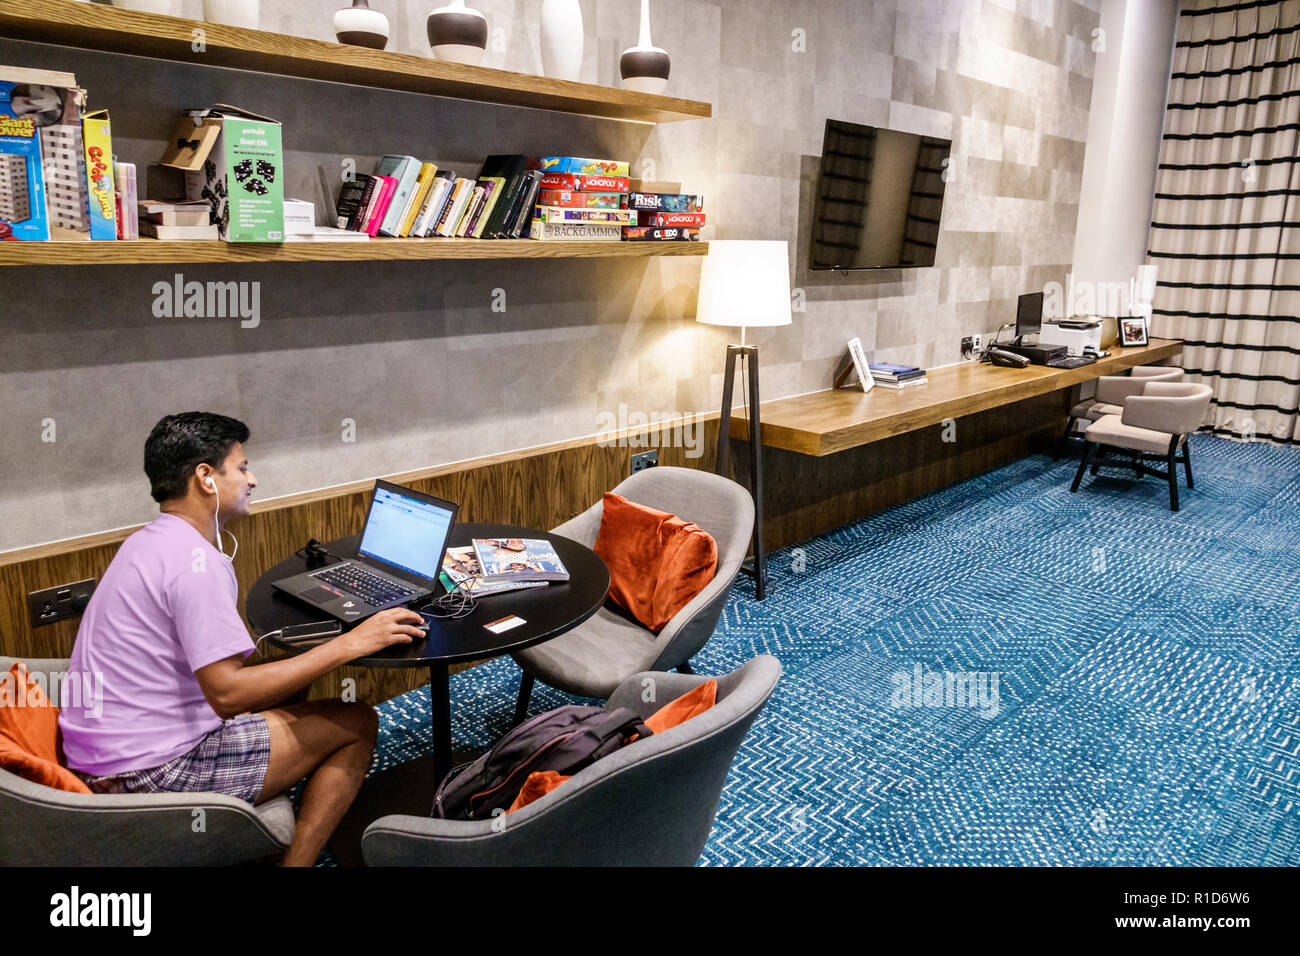 London England United Kingdom Great Britain Lambeth Staybridge Suites London Vauxhall hotel inside interior business center lobby play area Asian man - Stock Image